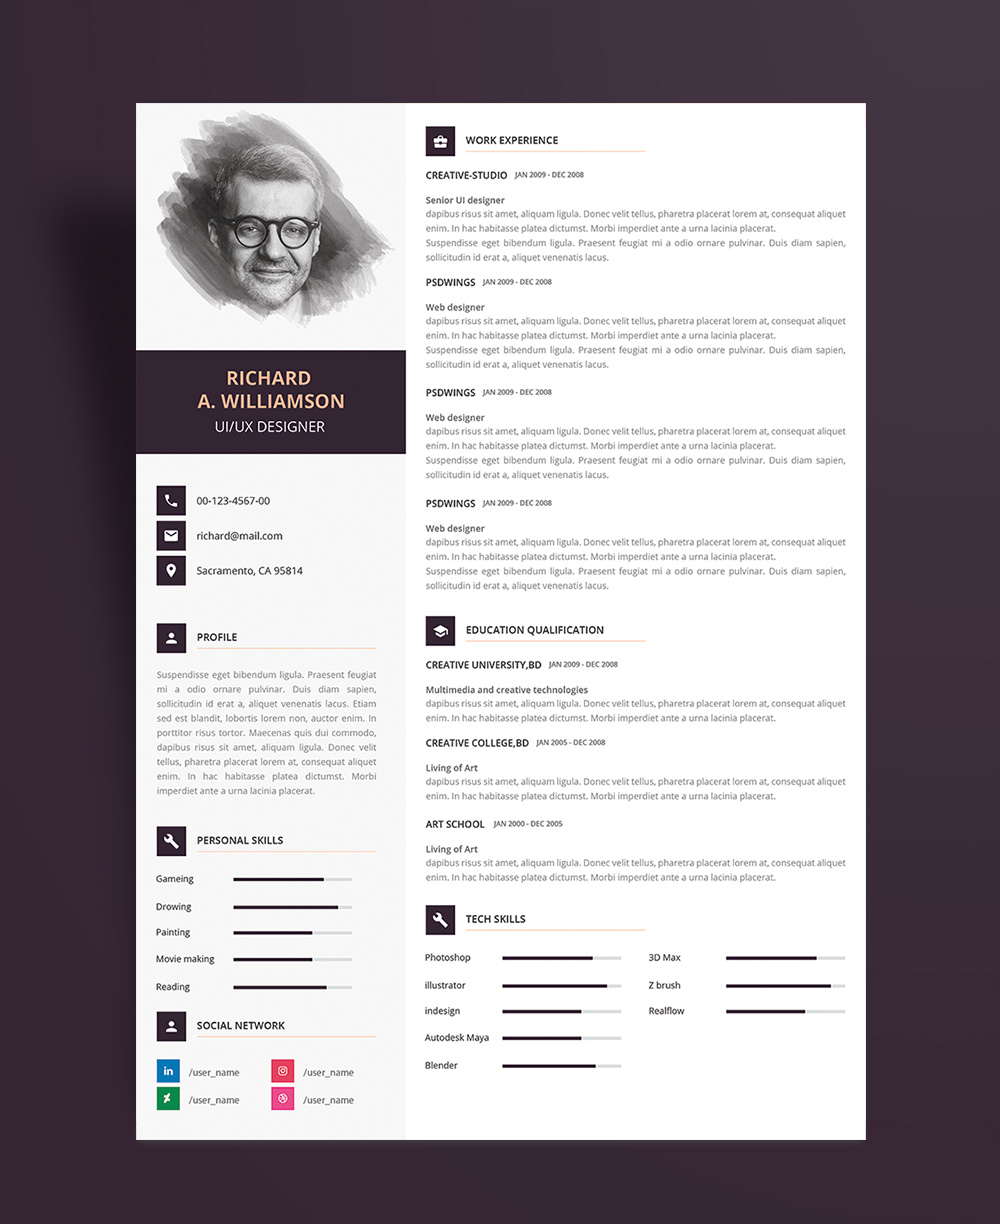 Creative Professional Resume (CV) Design Template With Cover Letter PSD  File ...  Creative Professional Resumes